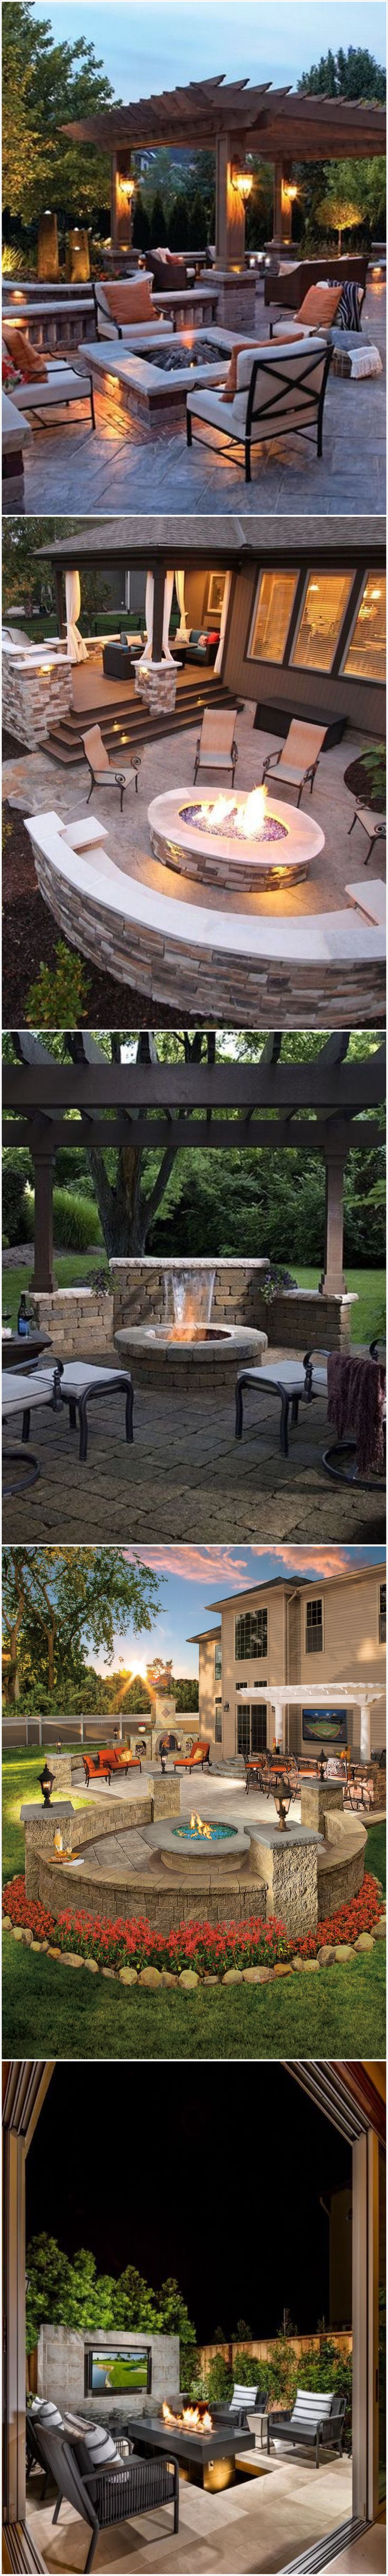 Outdoor  fire pits design Ideas